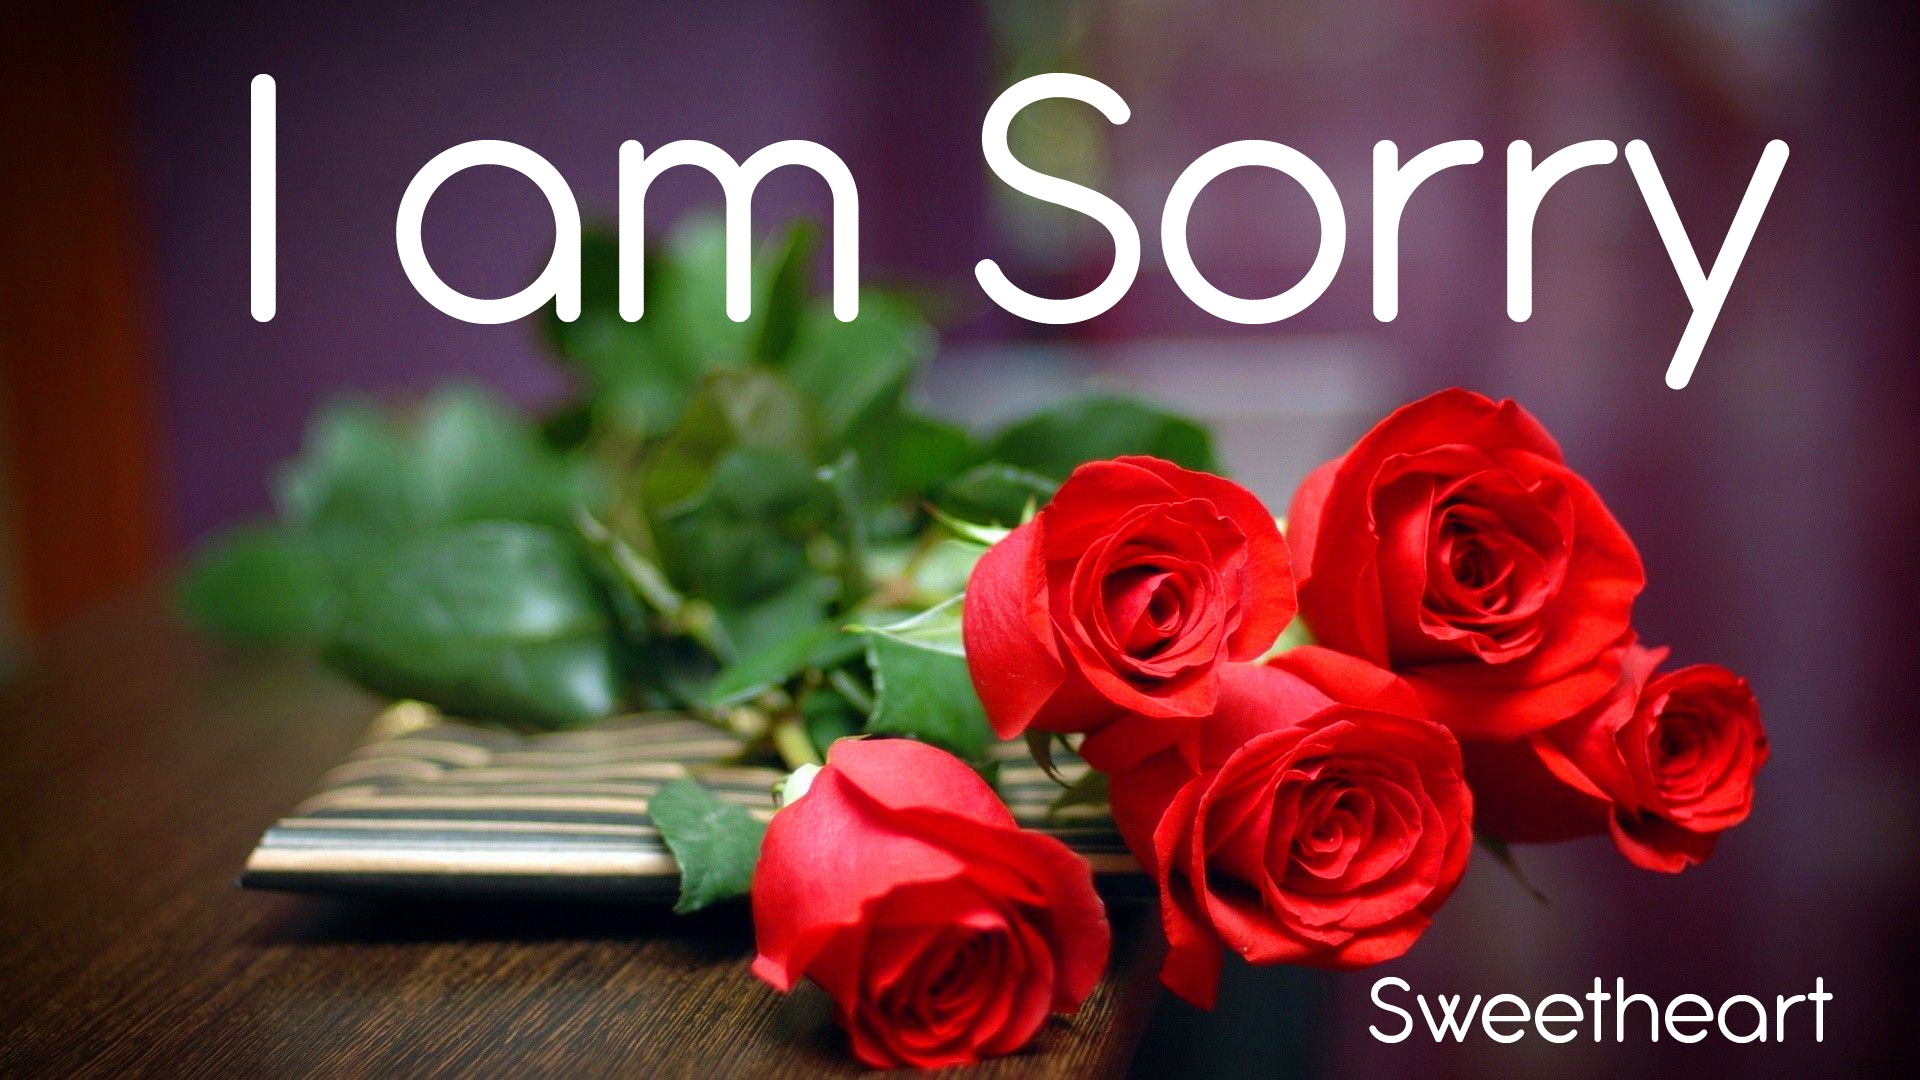 I am Sorry Images Pics Wallpaper Download for girlfriend